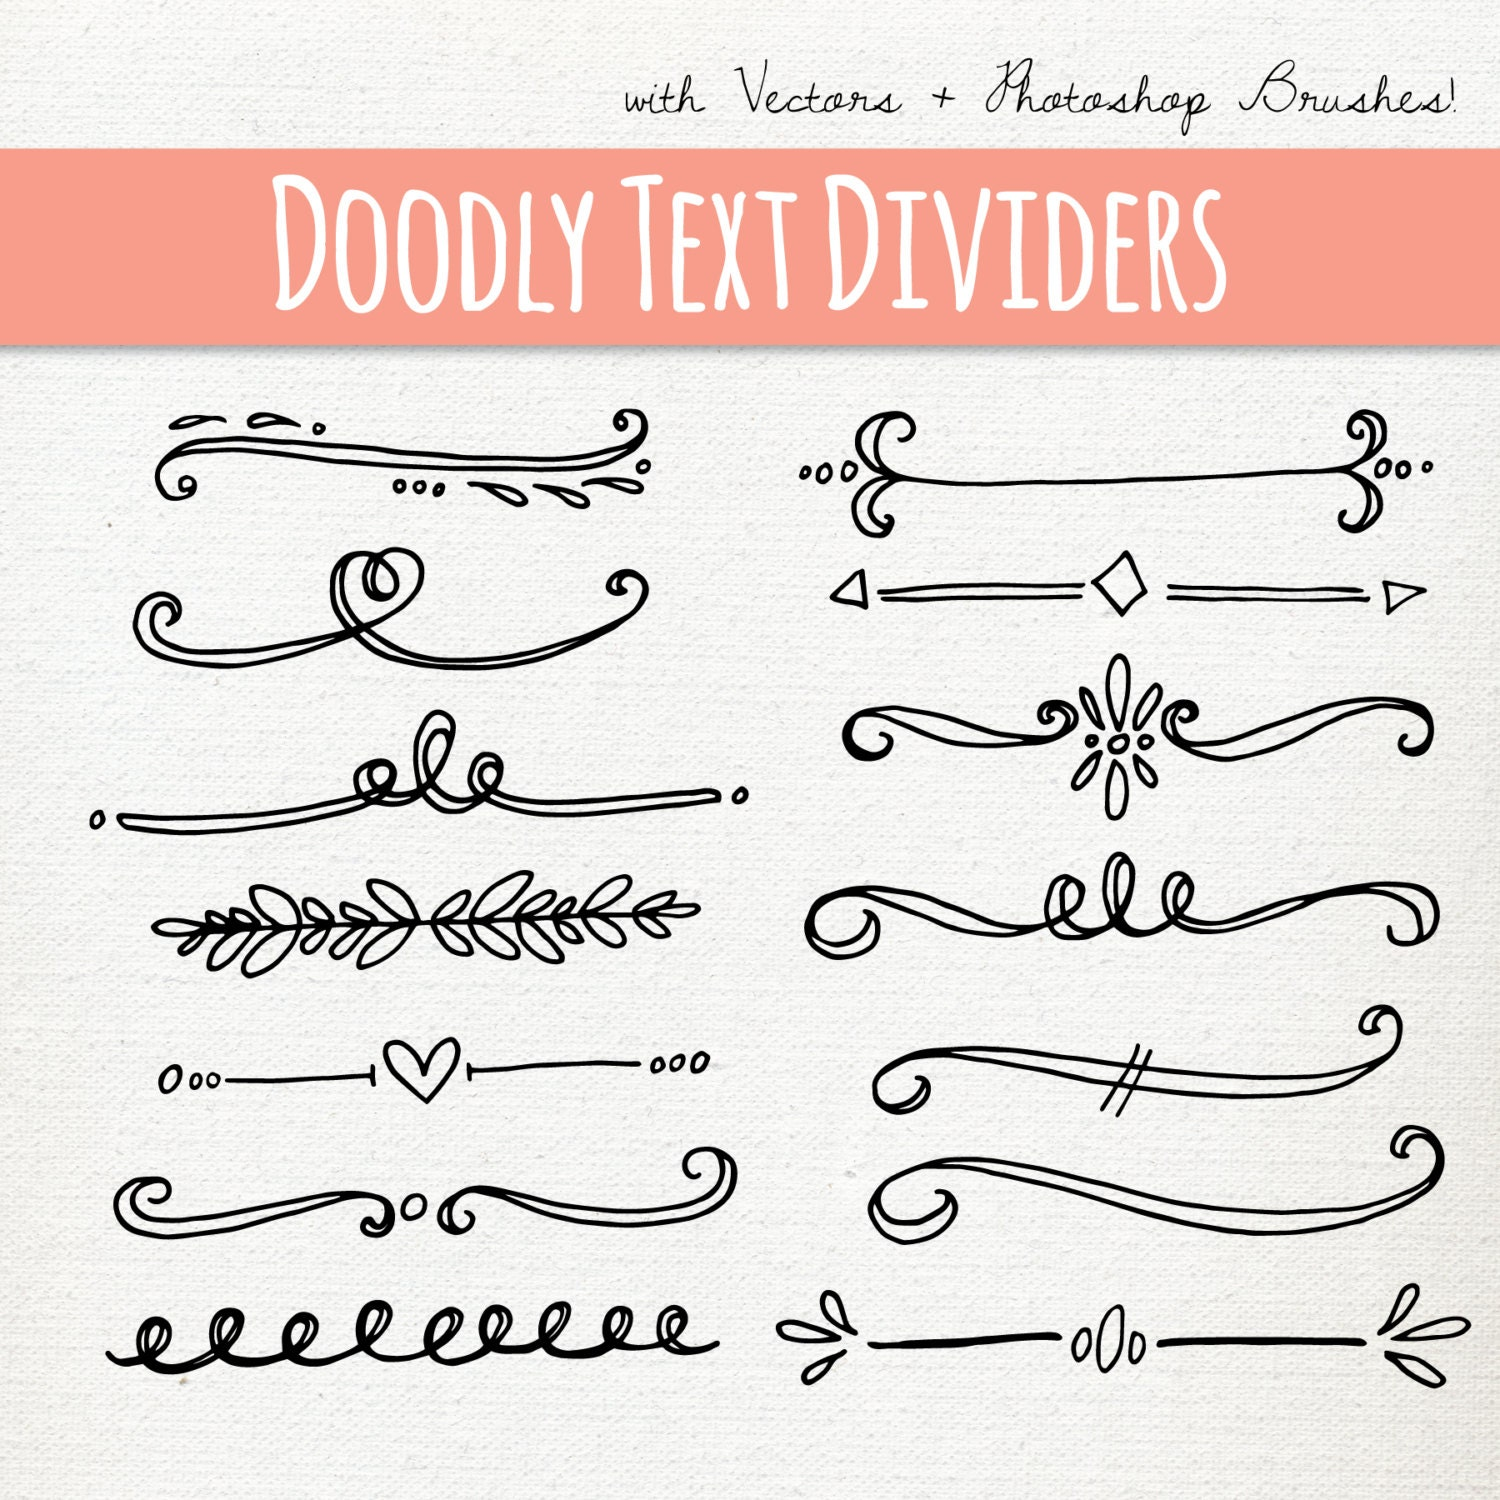 Single Line Text Art : Clip art doodly text divider abr photoshop brushes